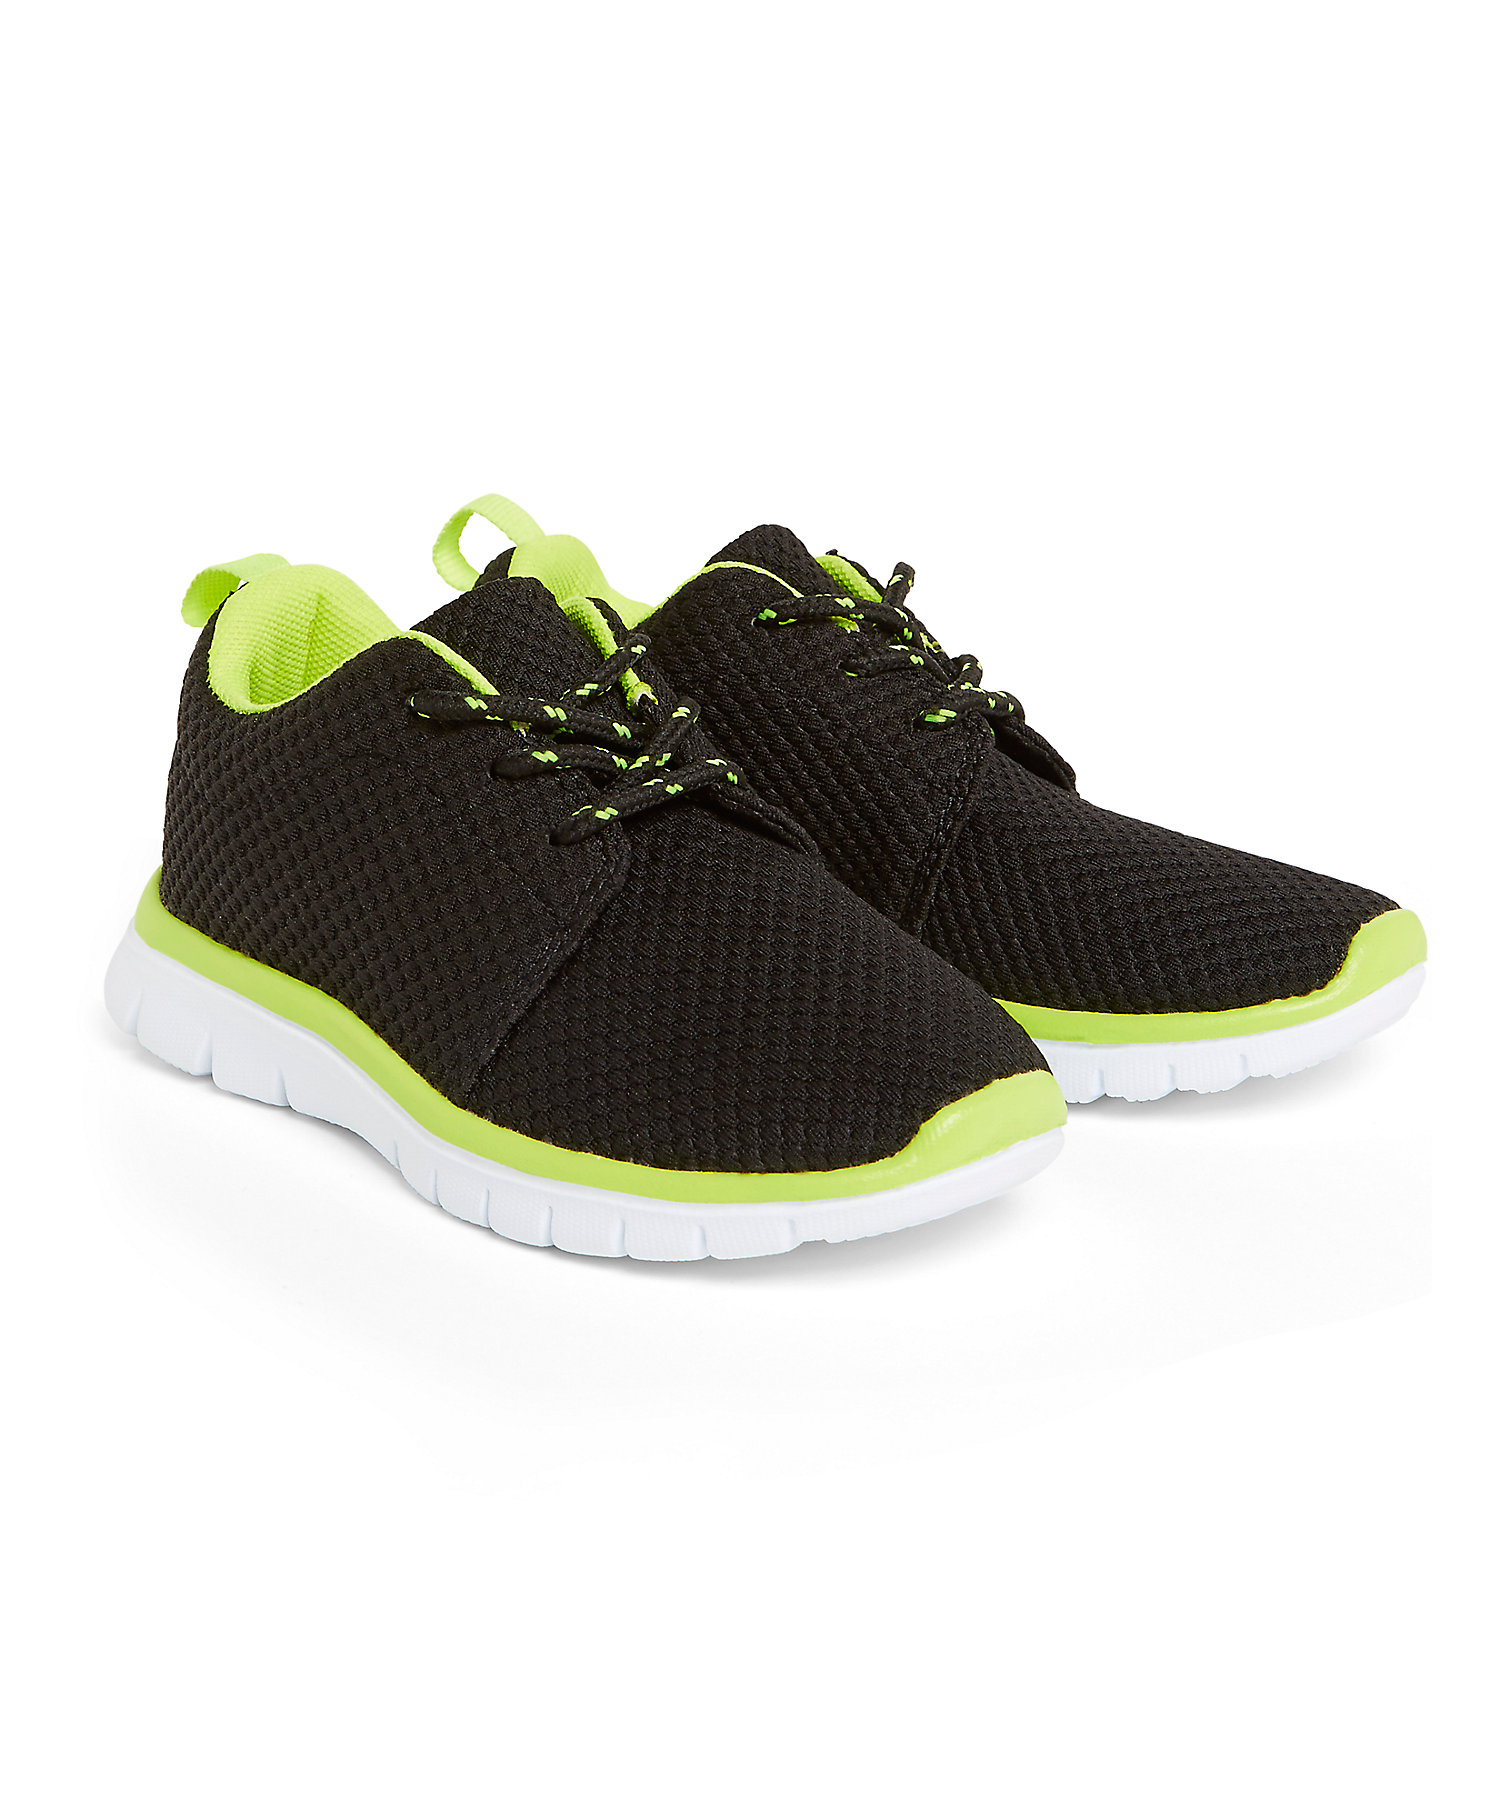 Mothercare | Boys Sports Shoes - Black